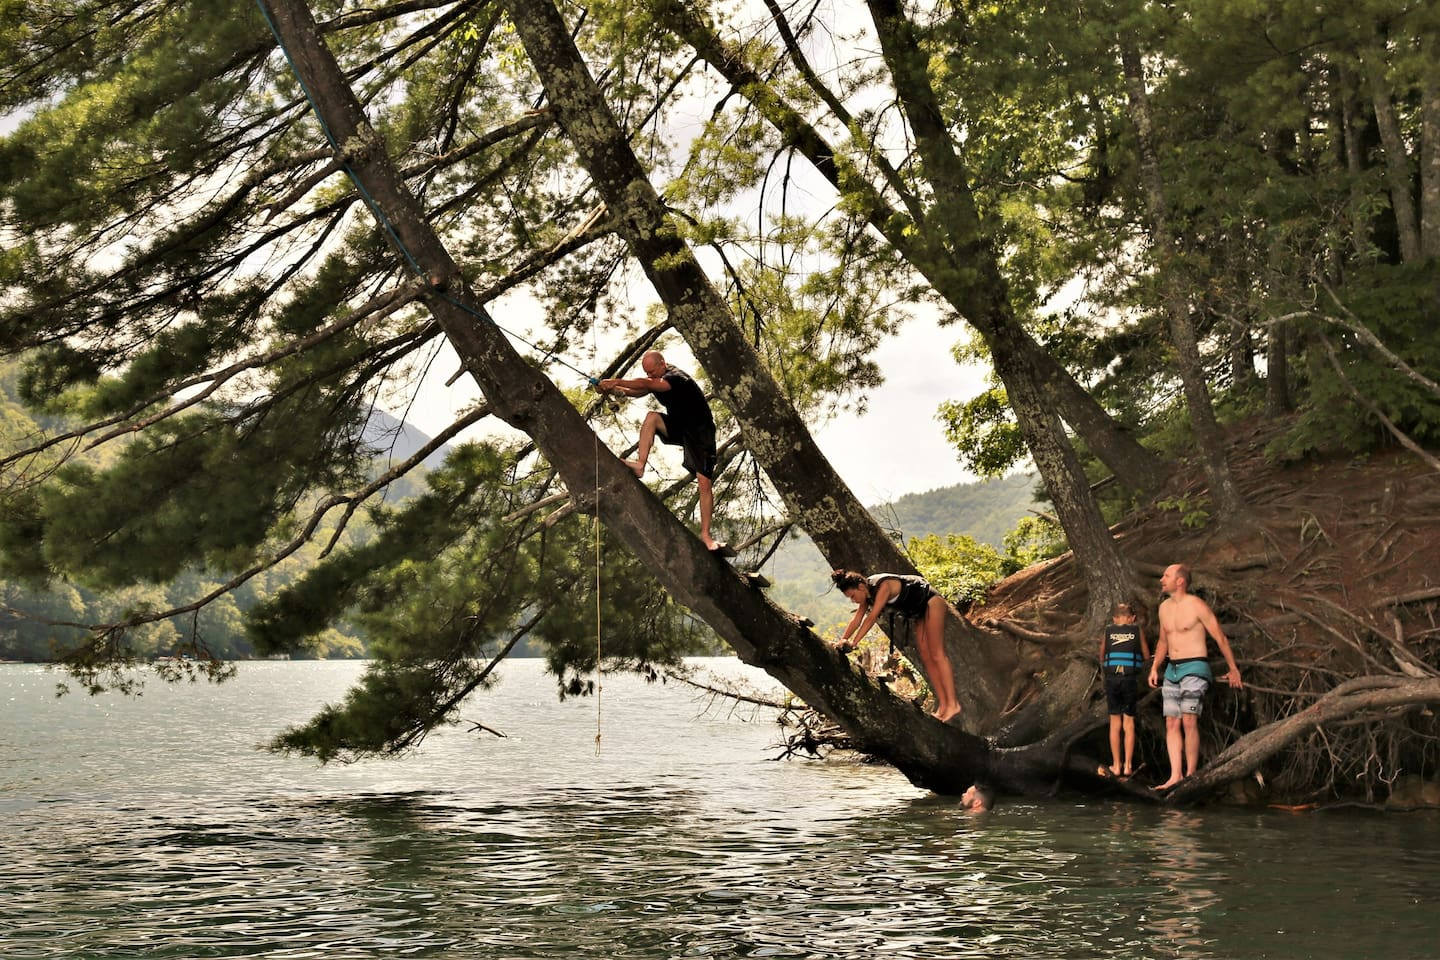 The amazingly fun Rope Swing at Rabbit Island - one of several swings on Nantahala Lake that we'll point you to when you book a stay at our cabin.  Summer Vacation Life Hack: Rent a boat at the local marina and spend a day on the lake!!!